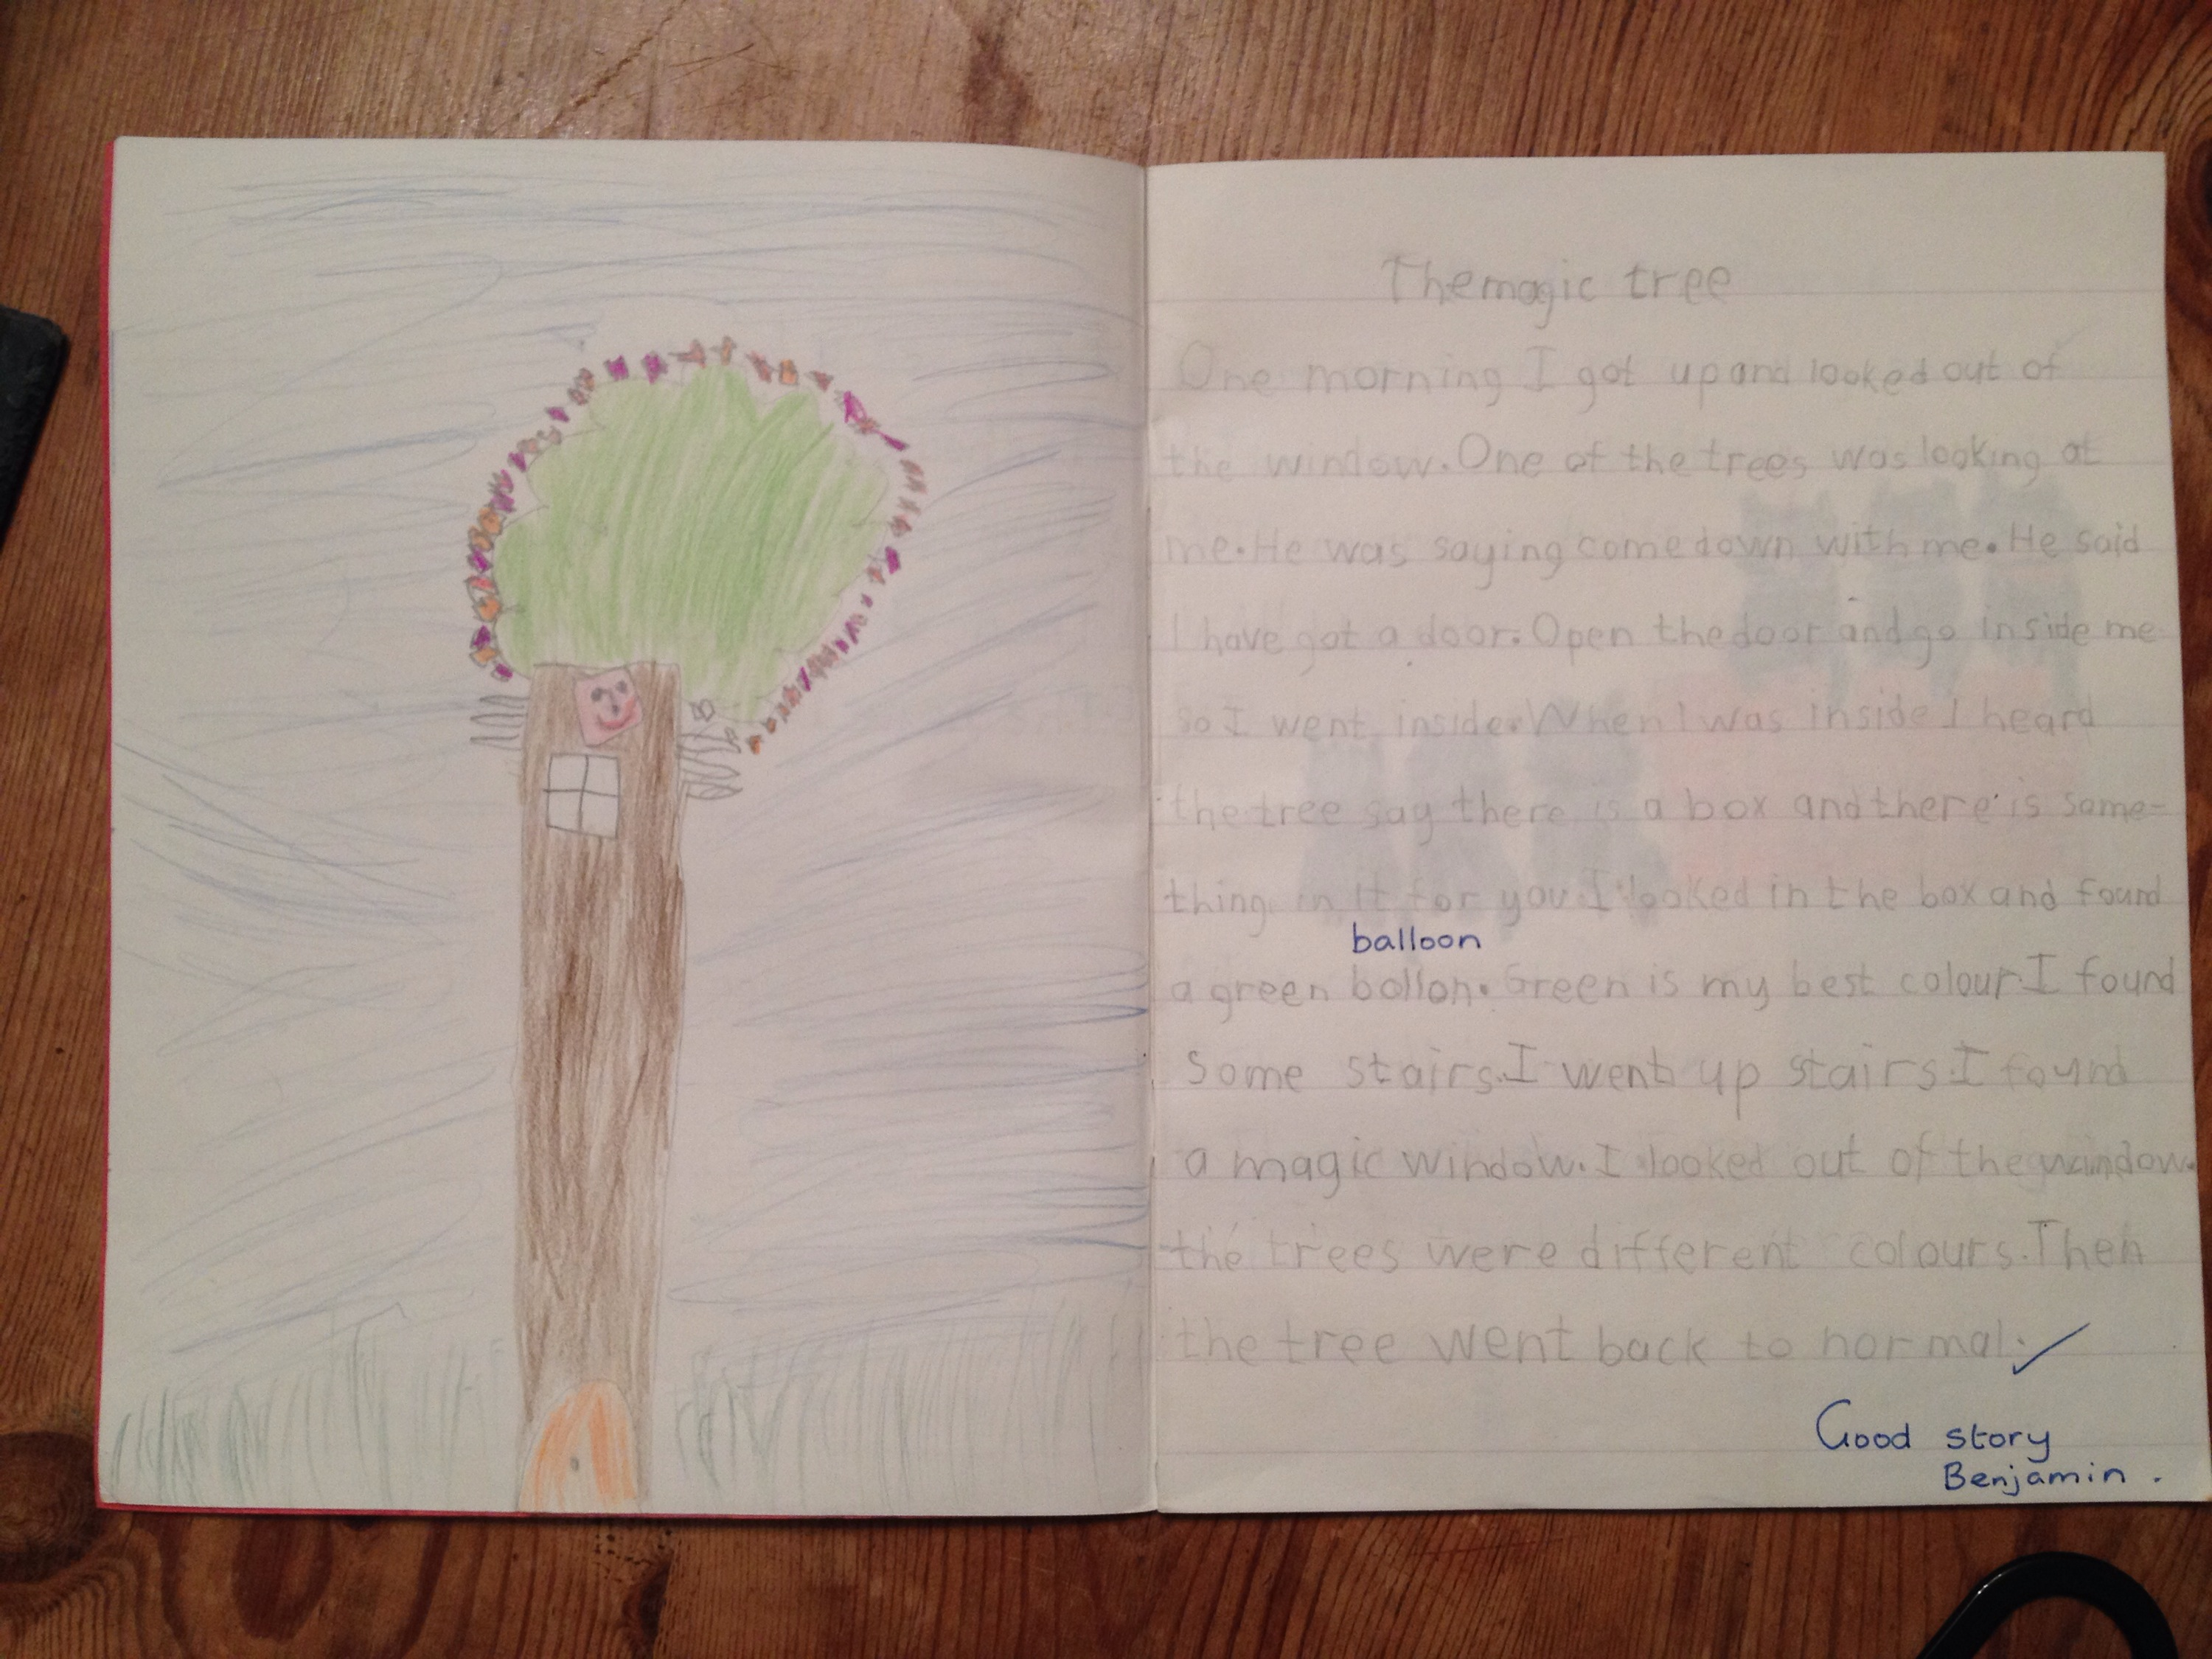 Colour childrens literature -  The Magic Tree By Ben Aged 5